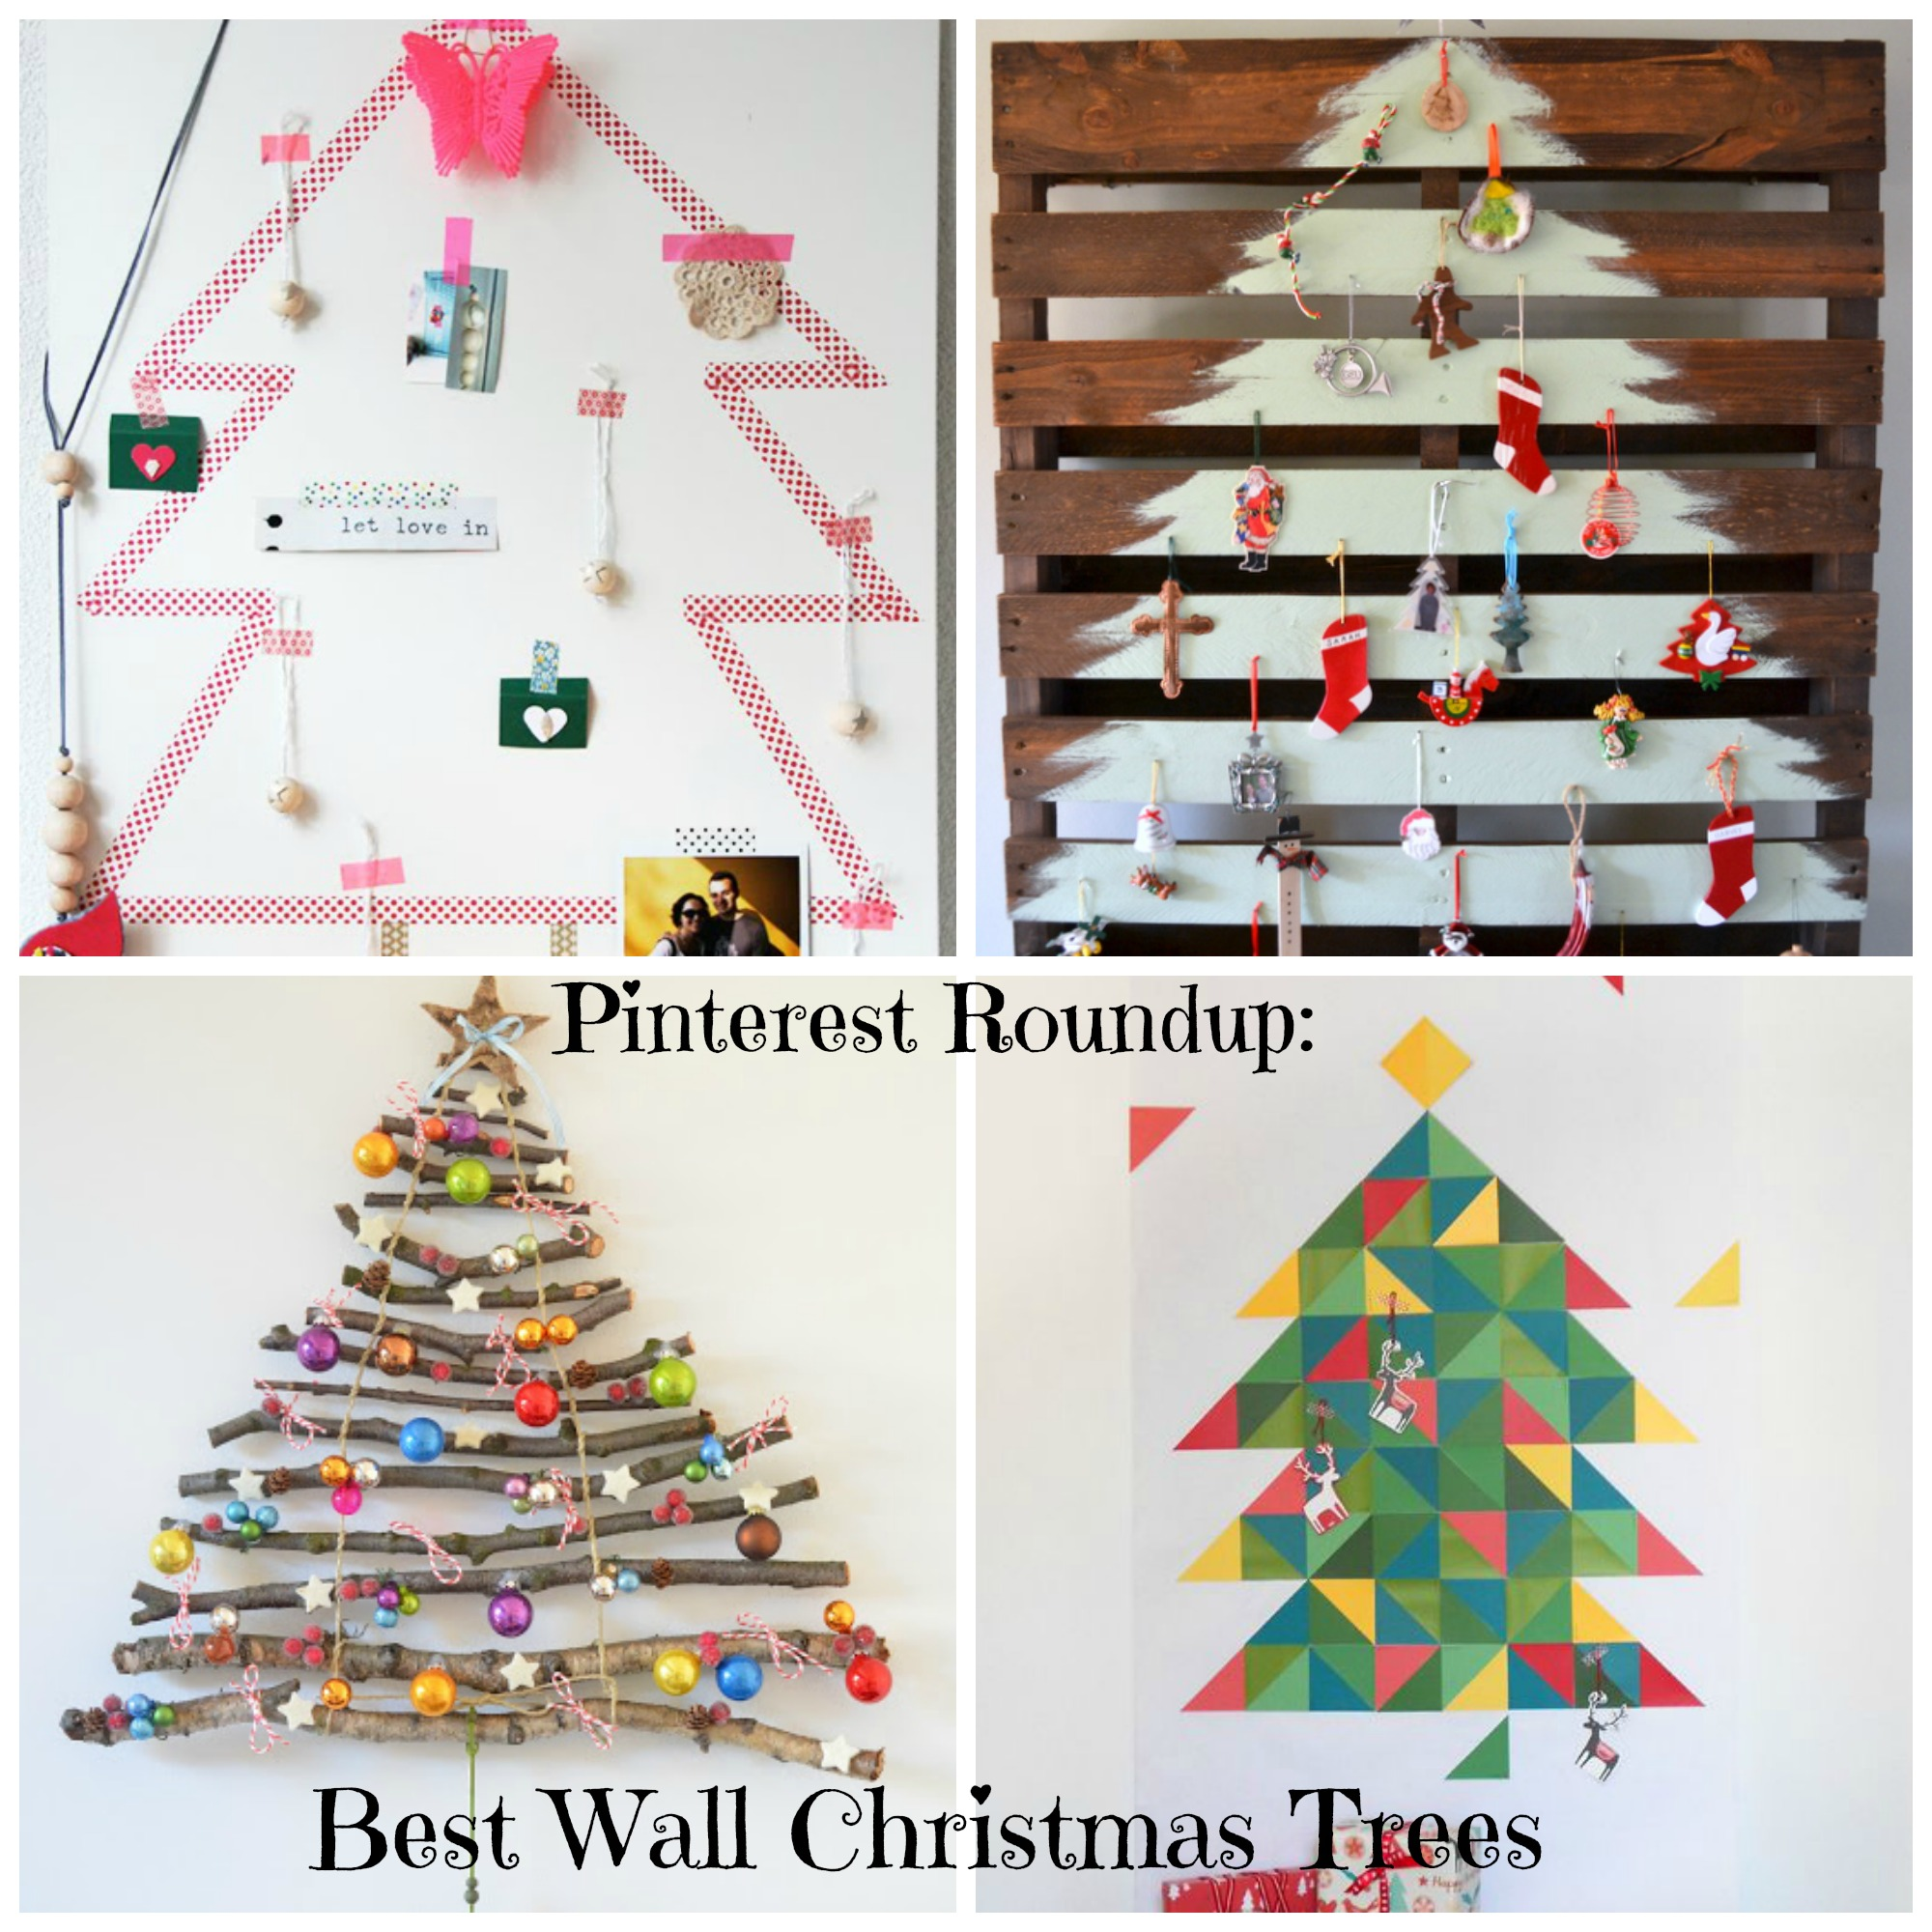 Best Wall Christmas Trees